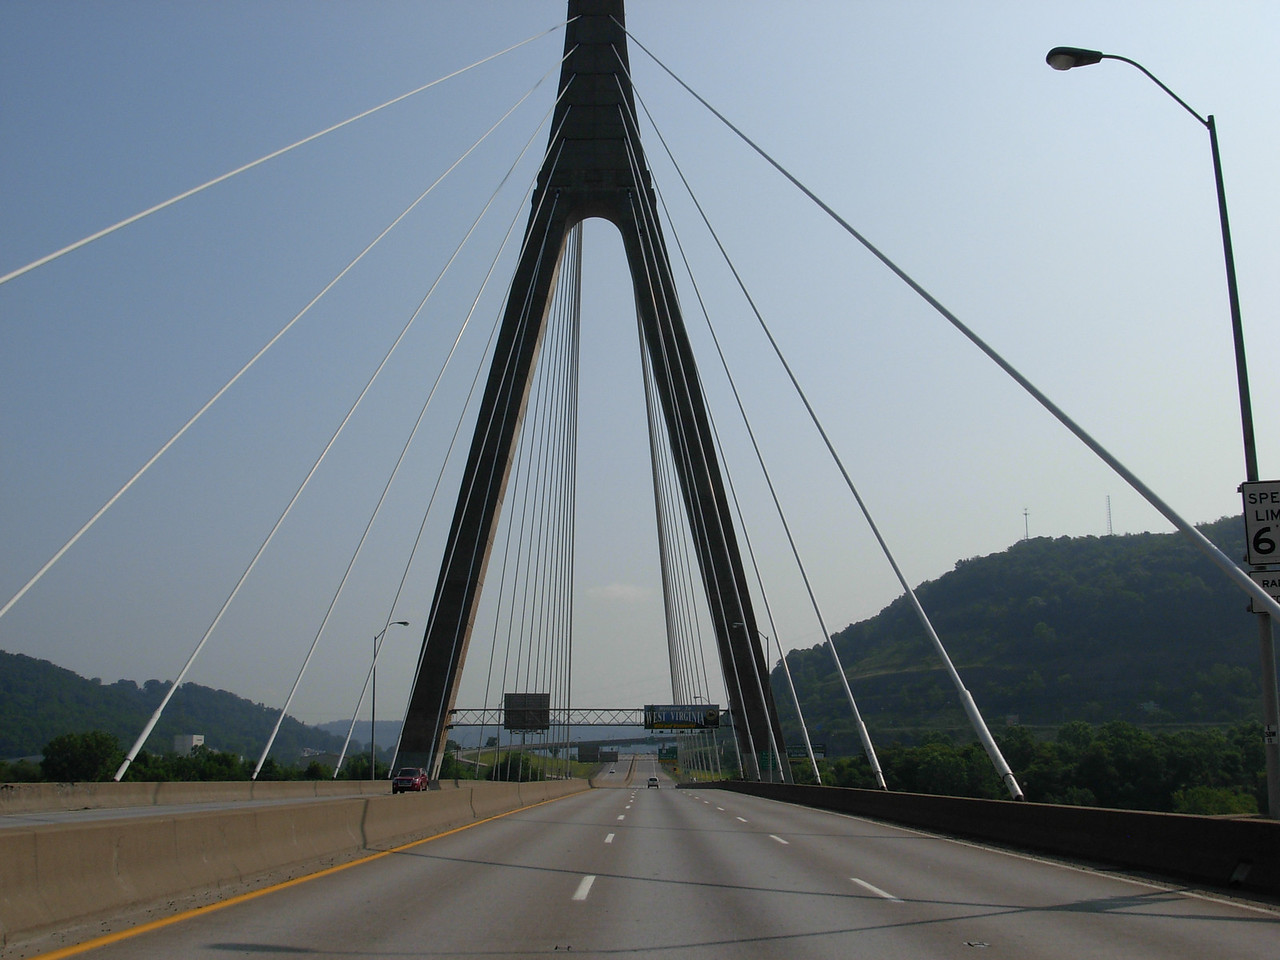 The Veterans' Memorial Bridge aka The Weirton-Steubenville Bridge, is located between Steubenville, OH and Weirton, WV.  It is a distinctive asymmetrical cable-stayed girder design and a truly monumental structure. <br /> <br /> The bridge is similar in appearance to the Ohio River crossing at East Huntington more than 200 miles to the south, utilizing the same design, only on a much larger scale. The cable‑stayed Veterans Memorial Bridge carrying US 22 between Weirton, West Virginia and Steubenville, Ohio is instead a monolith of both concrete and steel, combining the strengths of both and carrying not two but six lanes of traffic.  The cost of the bridge,completed in 1990, was $70 million.